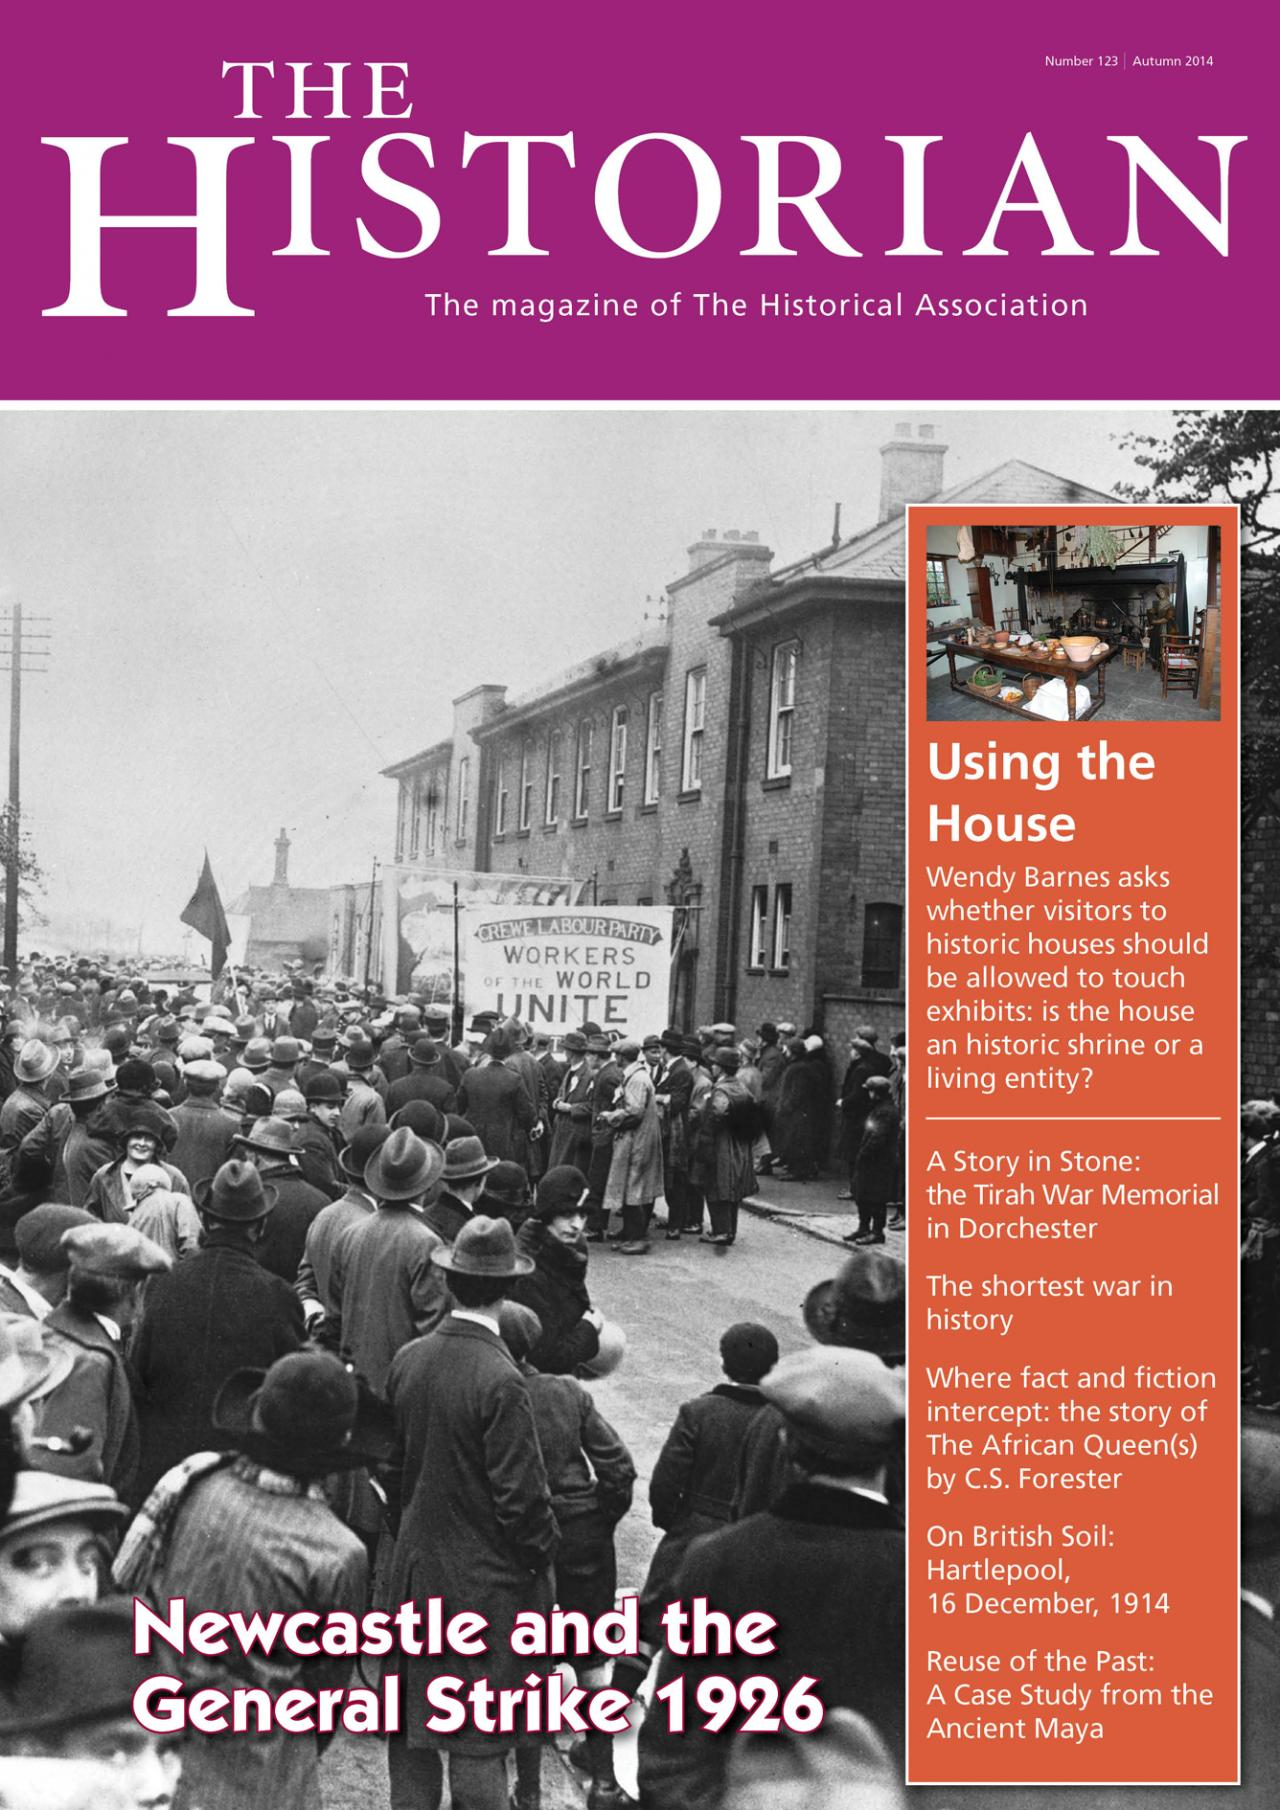 an introduction to the history of the general strike of 1926 It is one step from the general strike to armed insurrection if carried through to the end, the general strike brings the revolutionary class up against according to ramsay macdonald, the commission's report was a conspicuous landmark in the history of political thought the stars in their courses are.